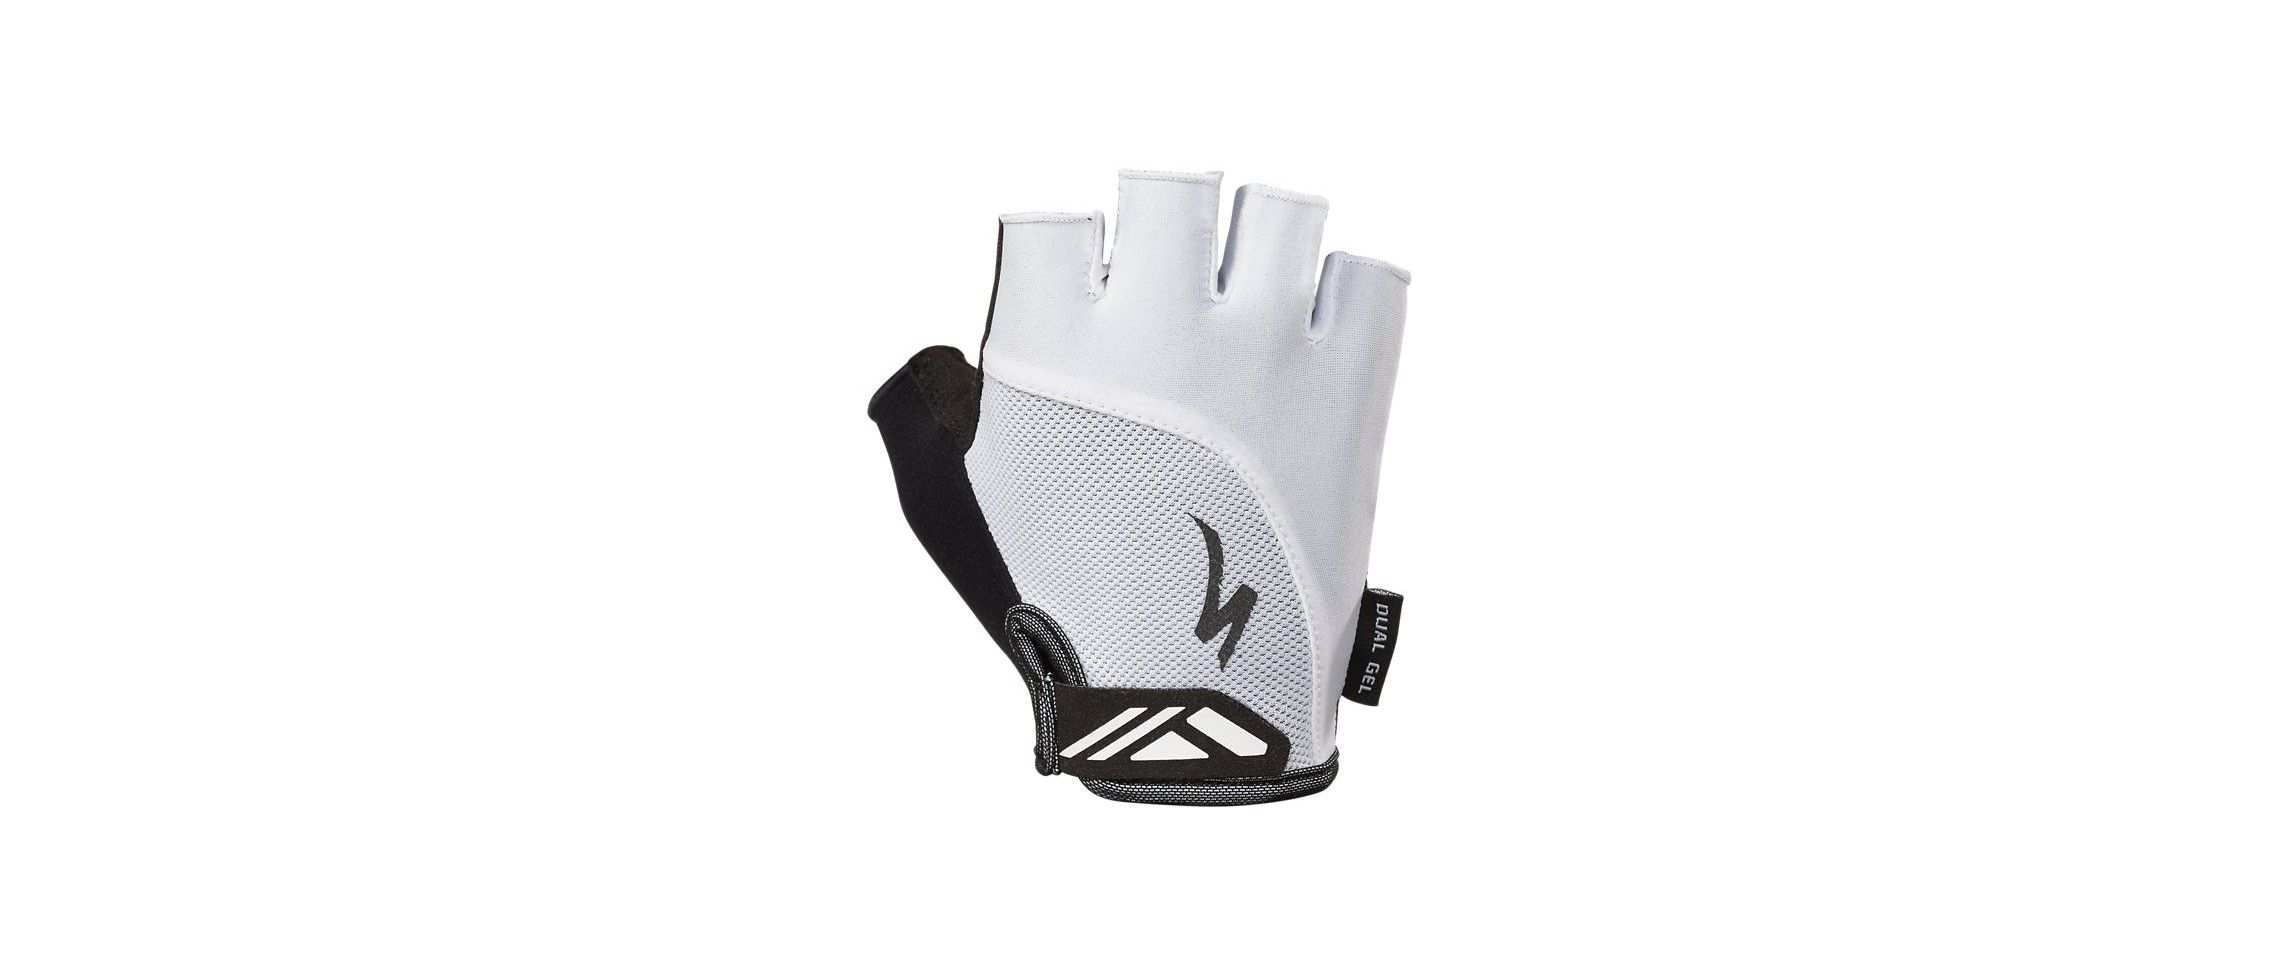 BG DUAL GEL GLOVE SF WMN WHT XL